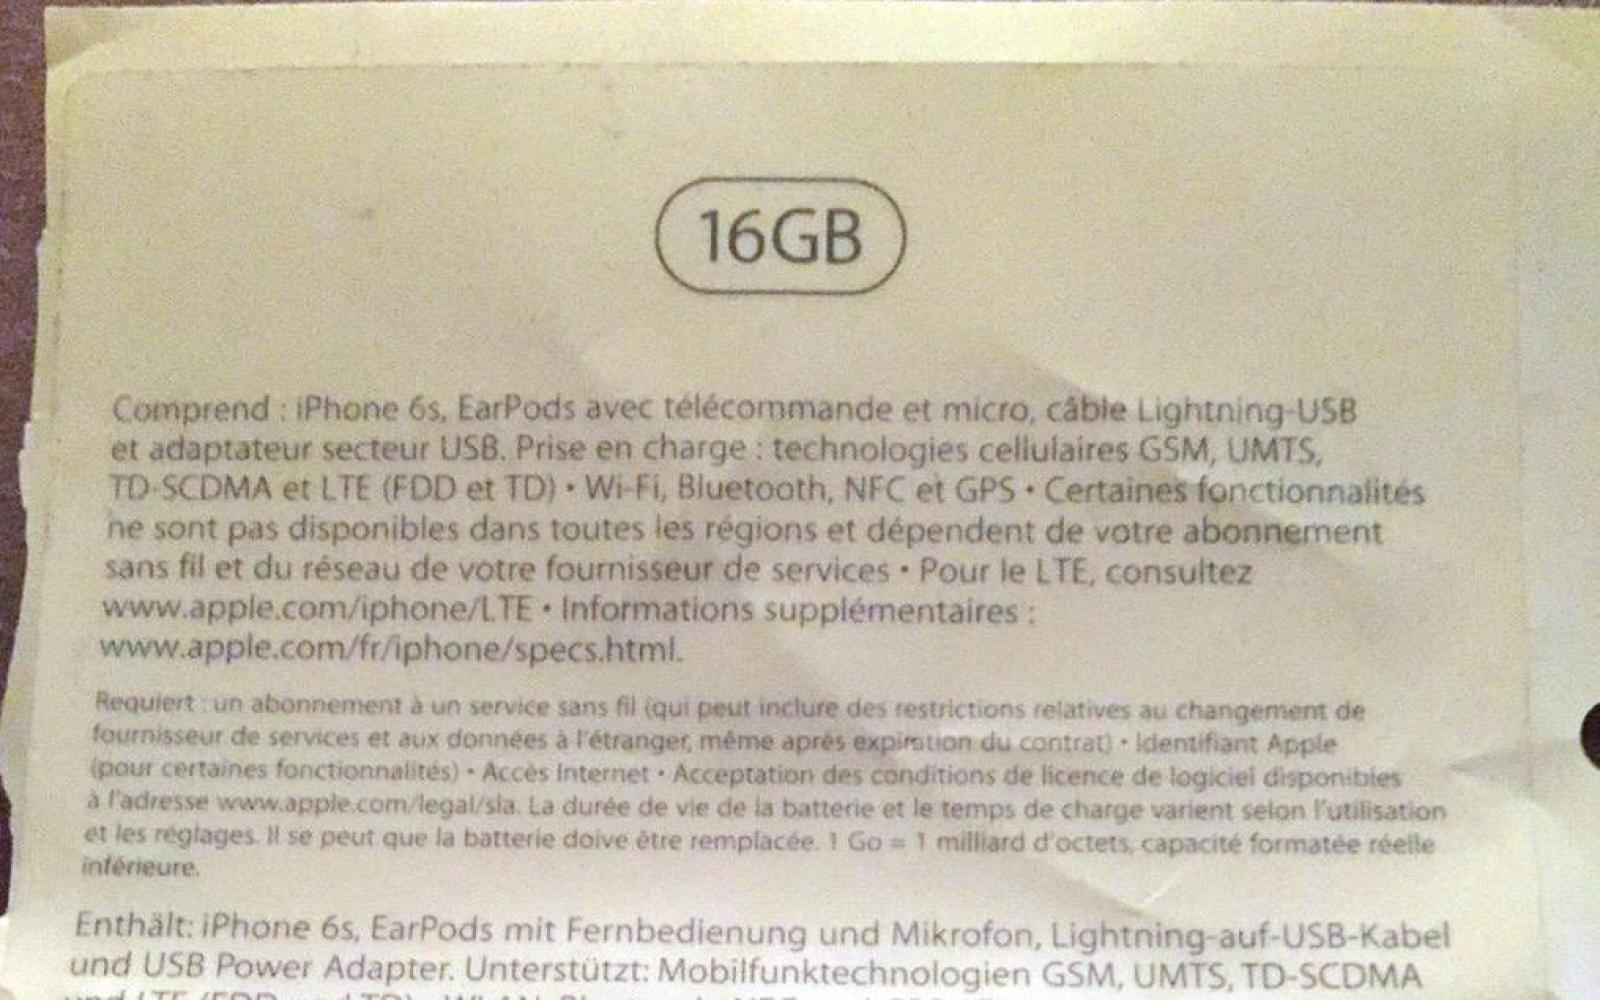 iPhone 6S rumors: New packaging leak suggests 16 GB base model will stay around for another product cycle